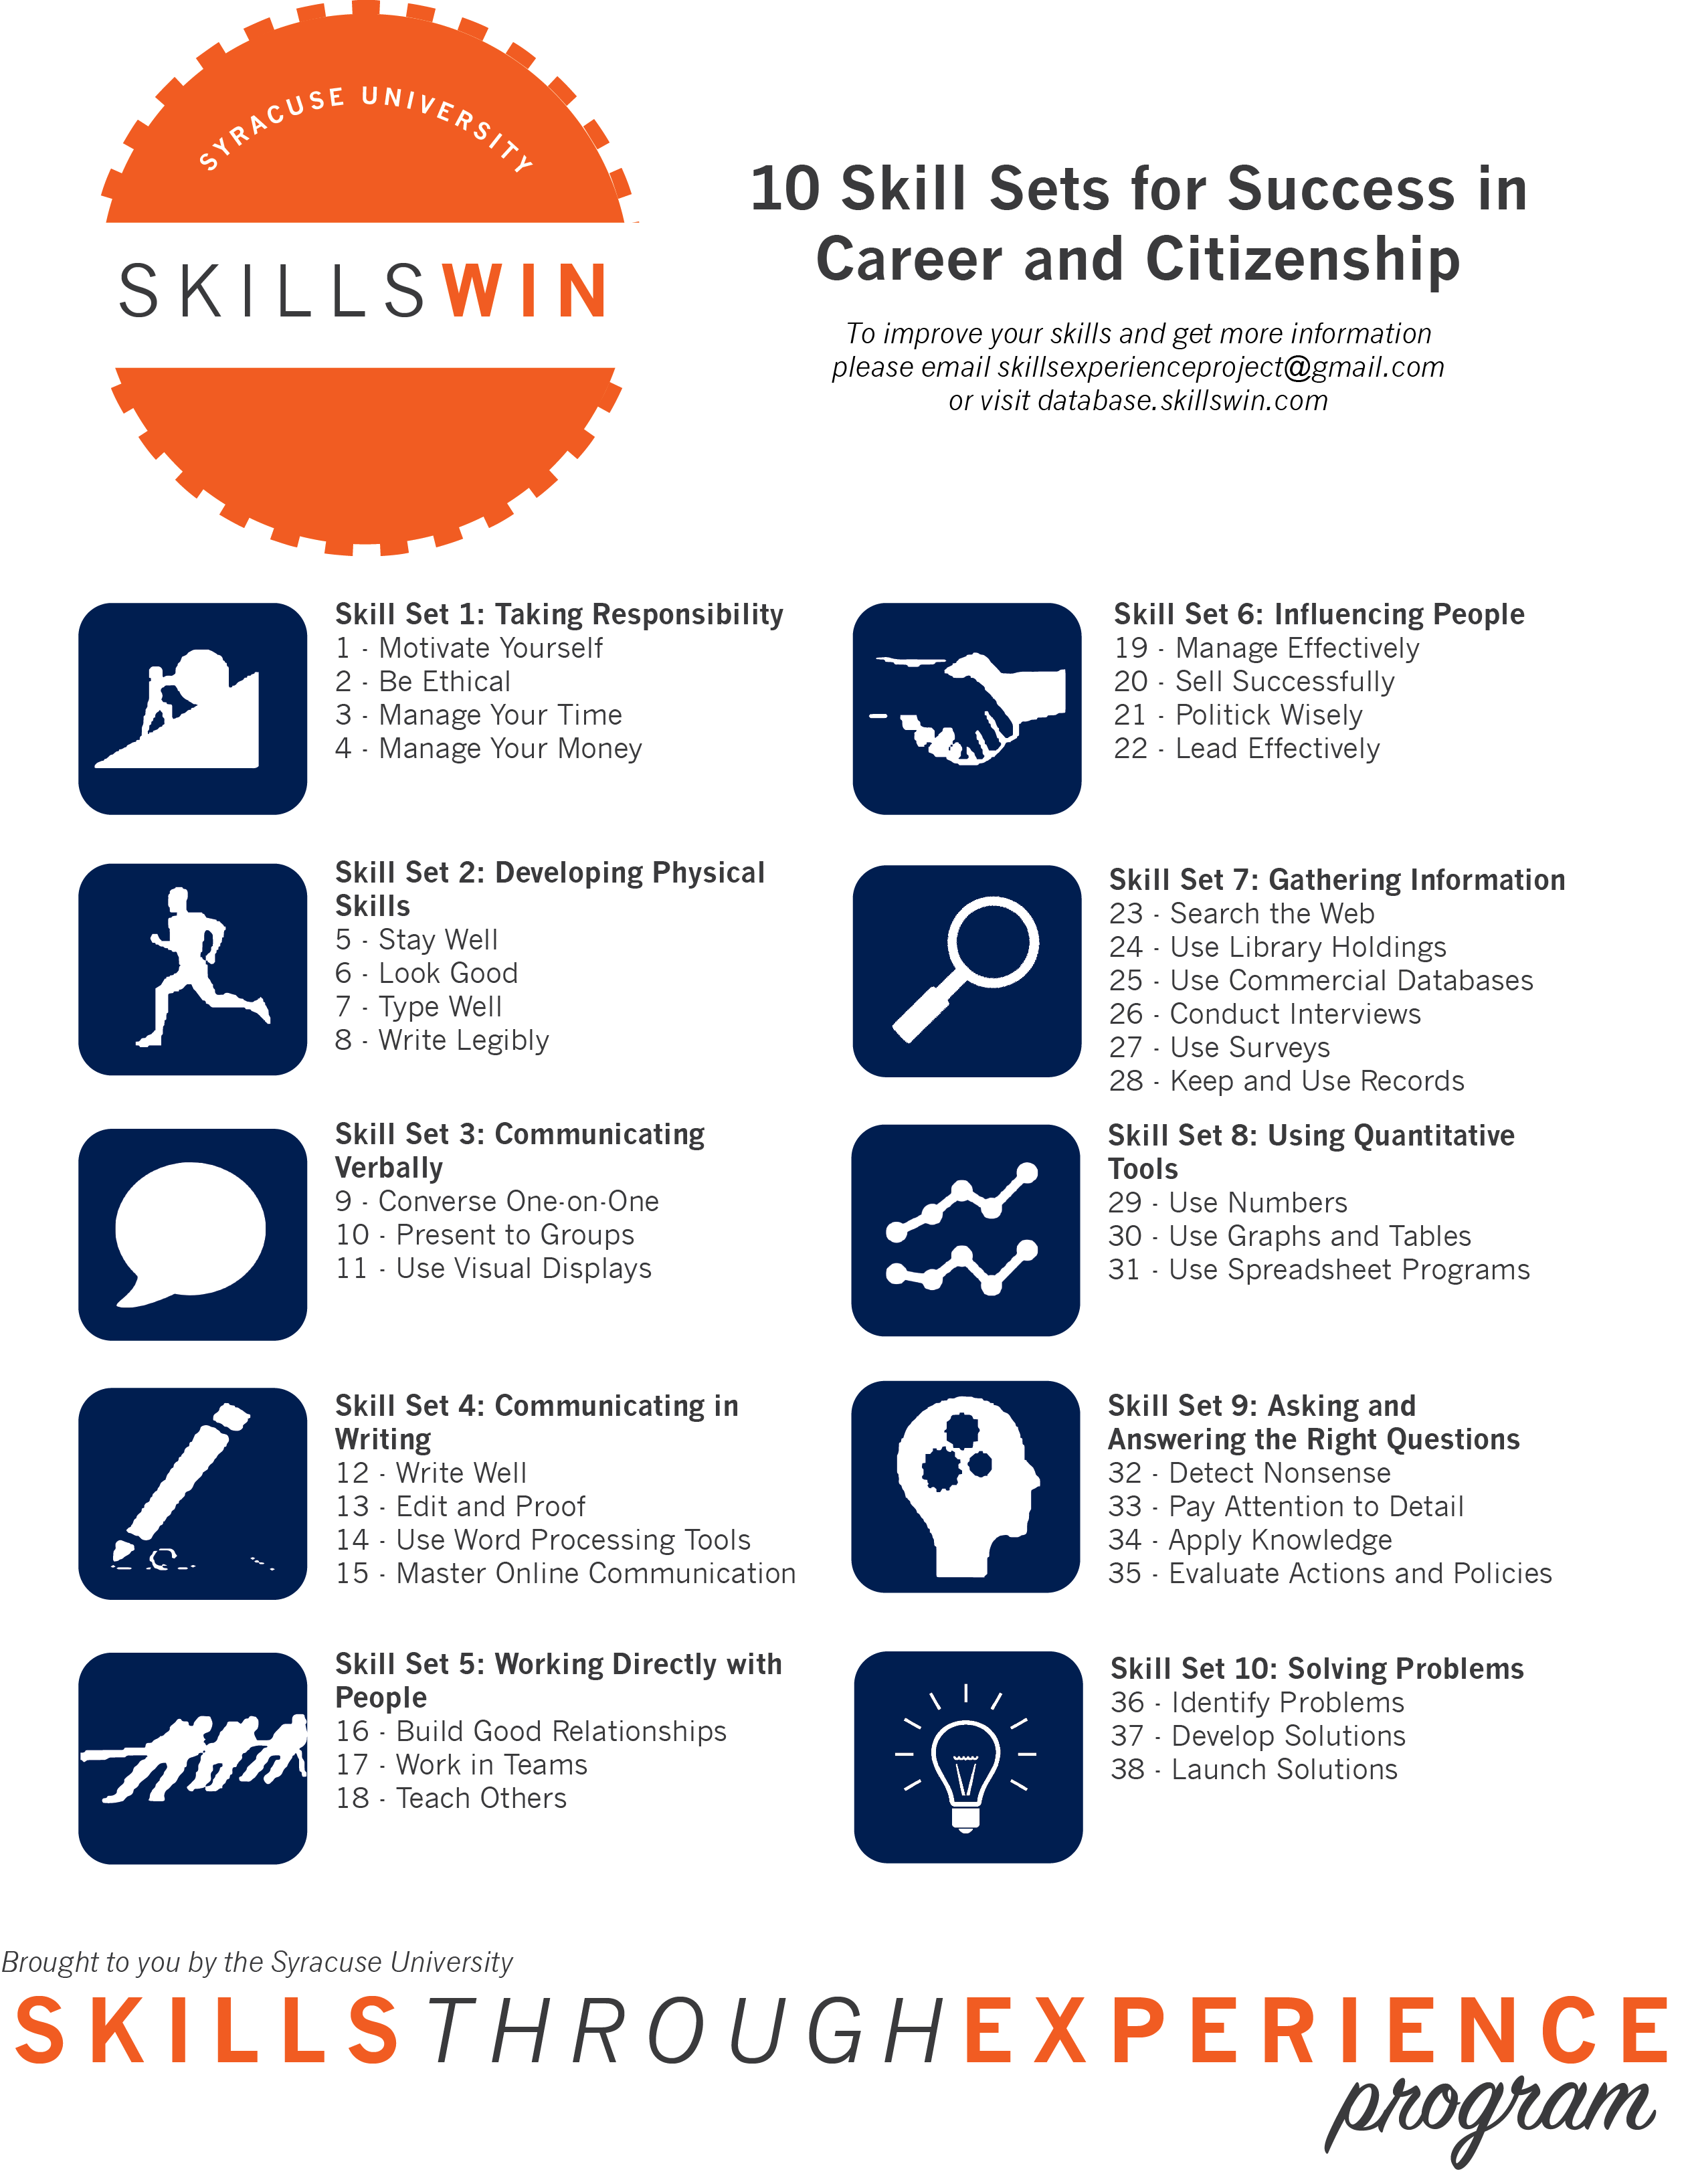 skills win database skills through experience program hear about professor coplin s 10 skill sets from the man himself